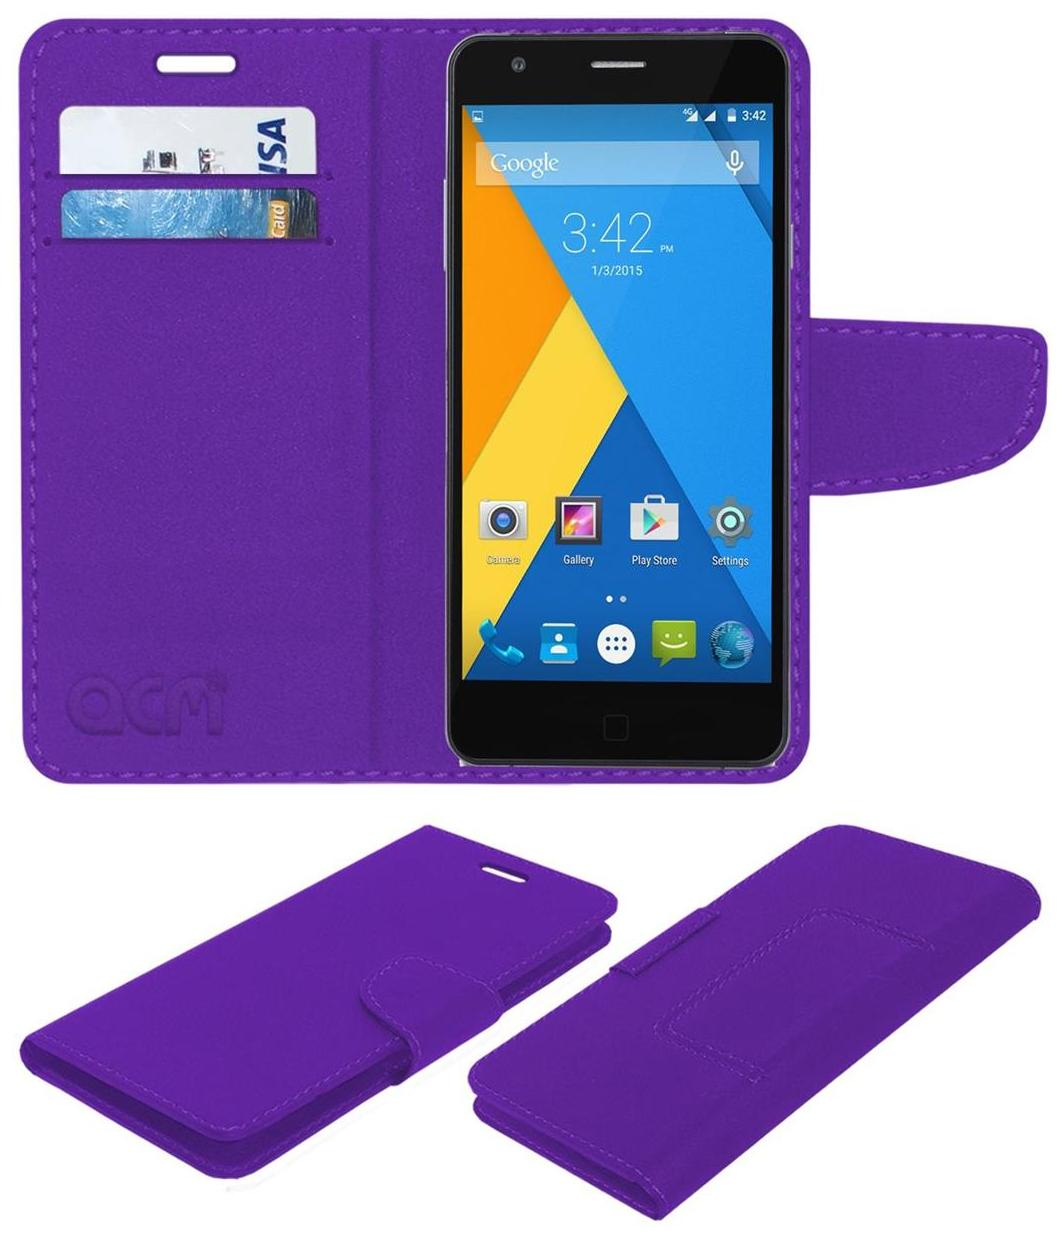 Acm Mobile Leather Flip Flap Wallet Case for Micromax Yu Yuphoria Yu5010 Mobile Cover Purple by Accessories Masters